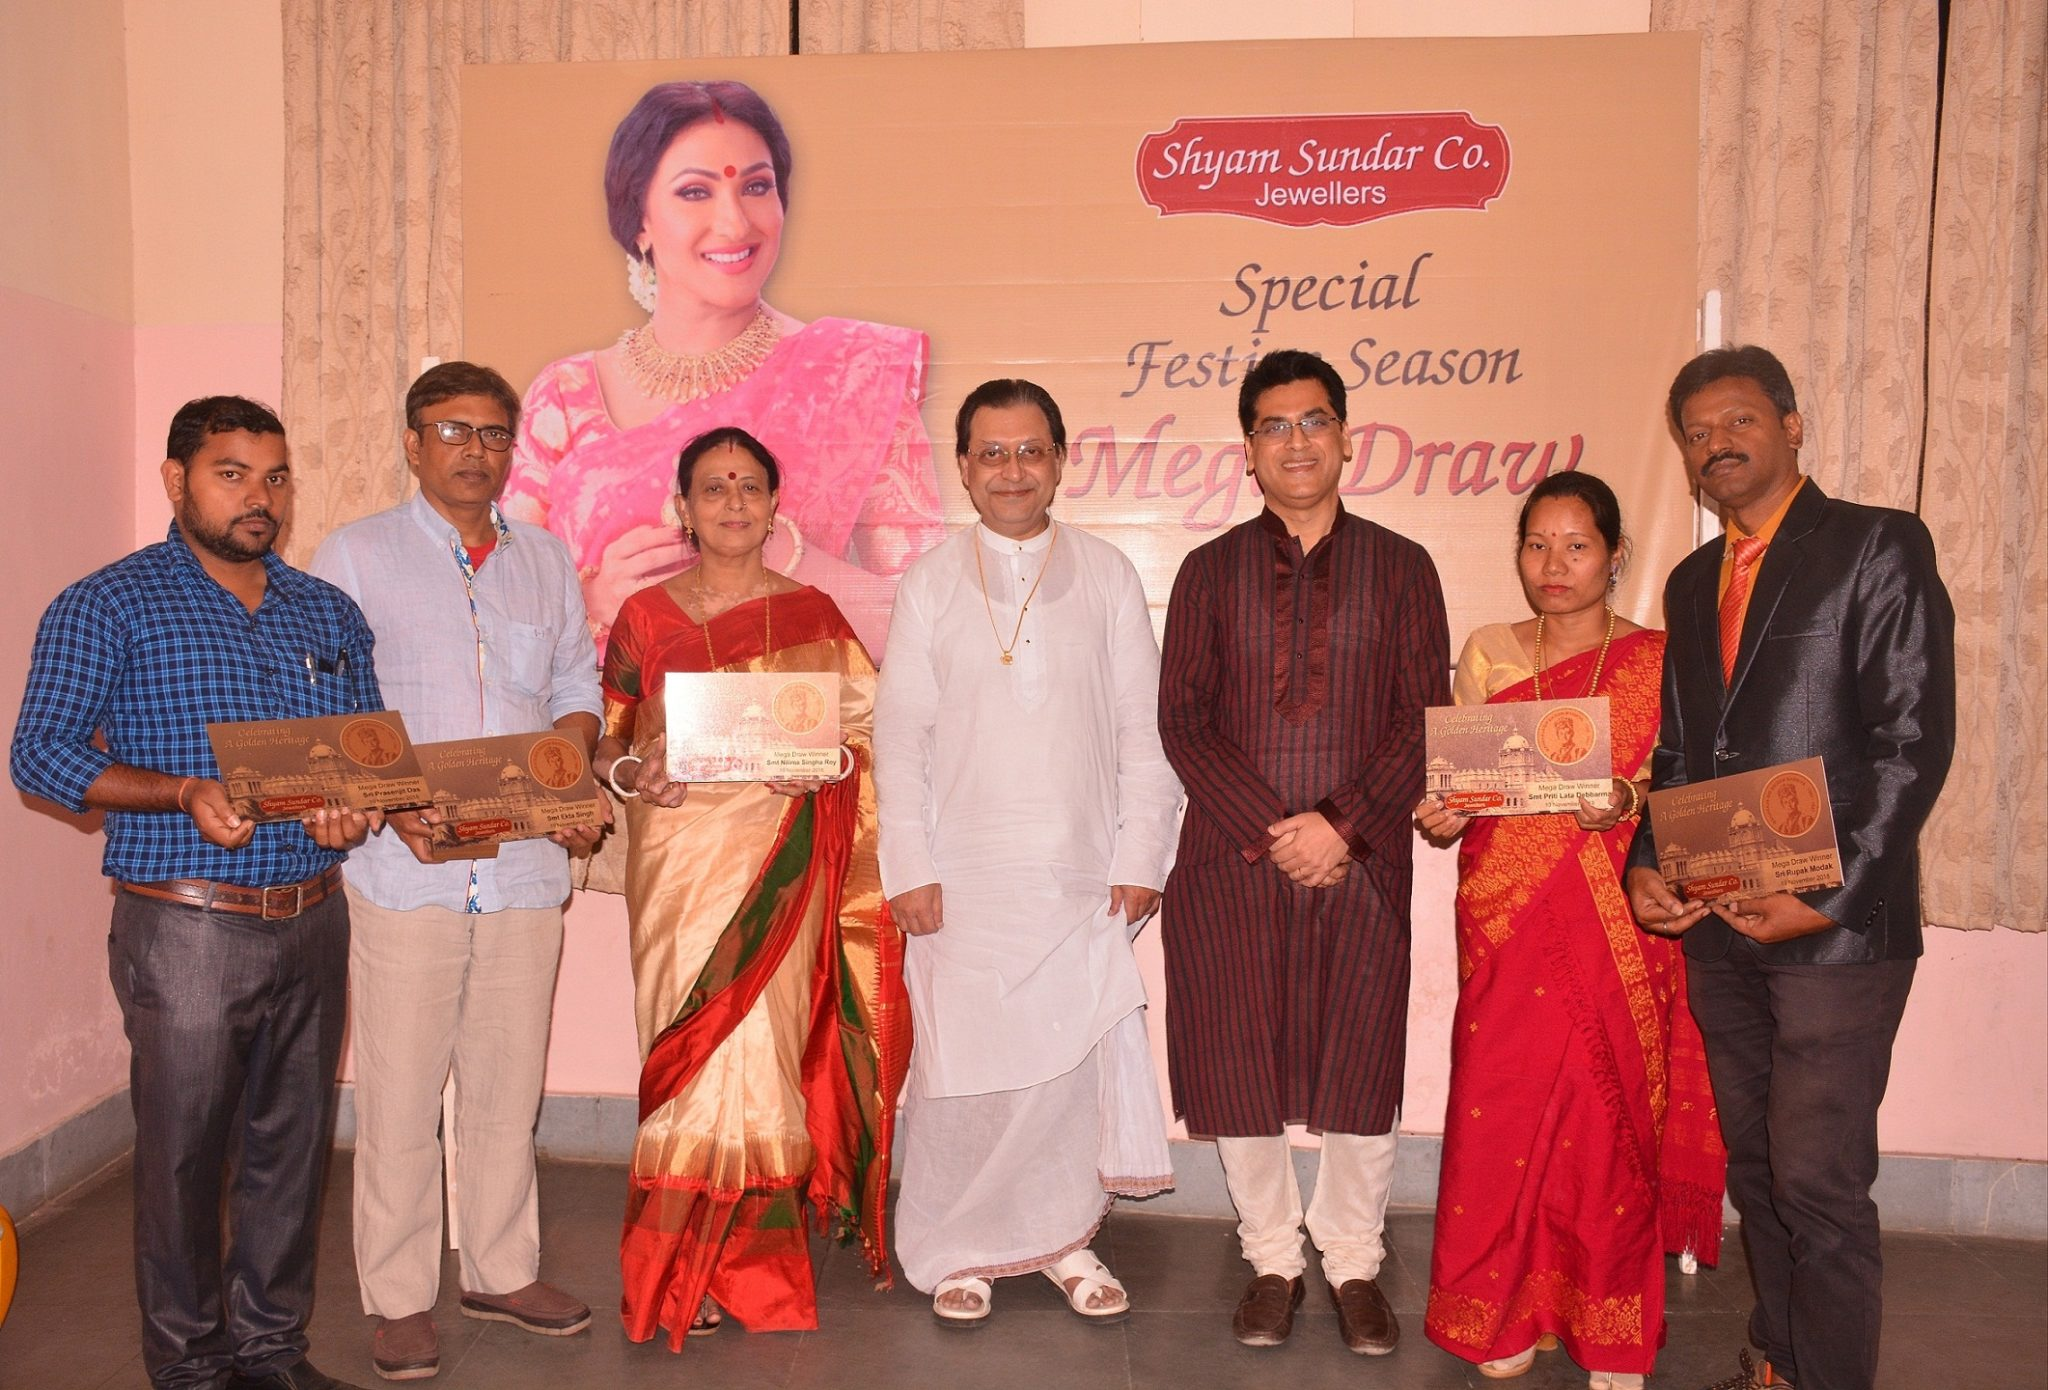 Shyam Sundar Co. Jewellers presented 'A Happy Ending of The Festive Season'